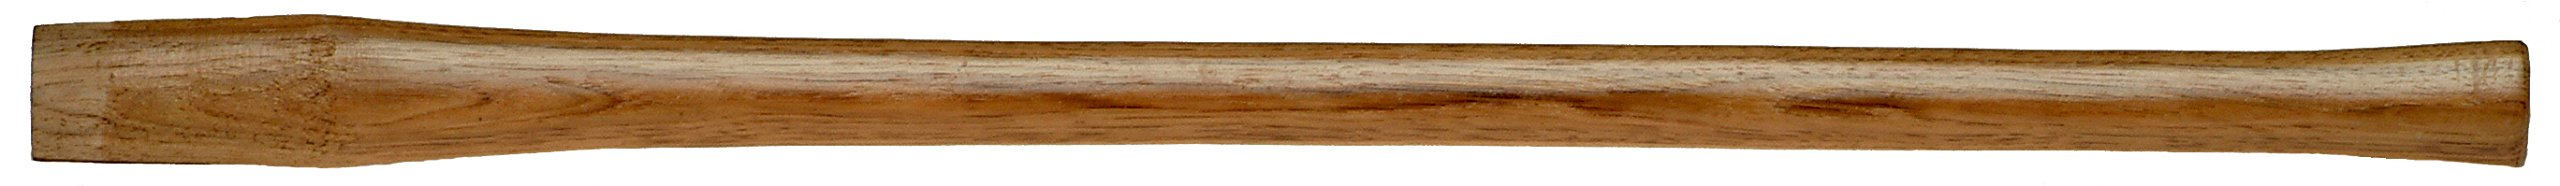 Link Handles 64766 Straight Double Bit Splitting Maul Handle, 36'' Length, Wax Finish, Contractor Grade by Link Handles